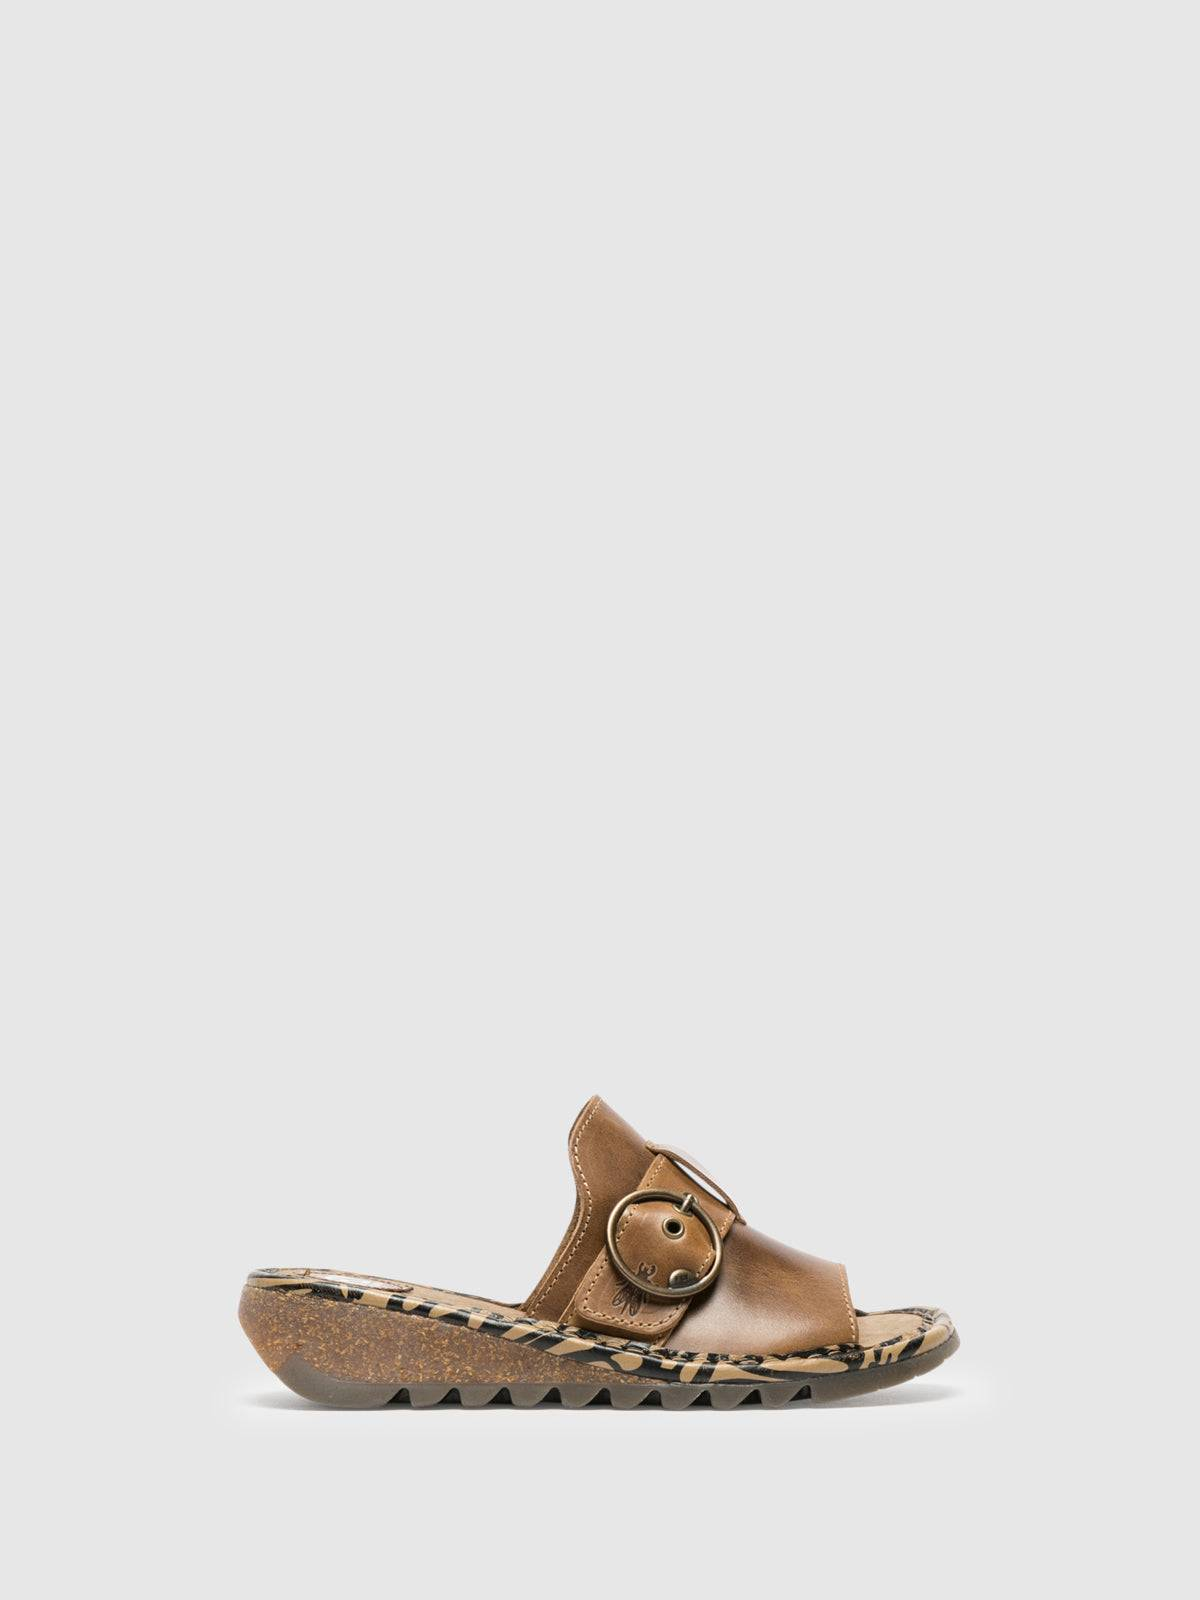 Fly London Mules mit offener Kappe in Camel - Overcube